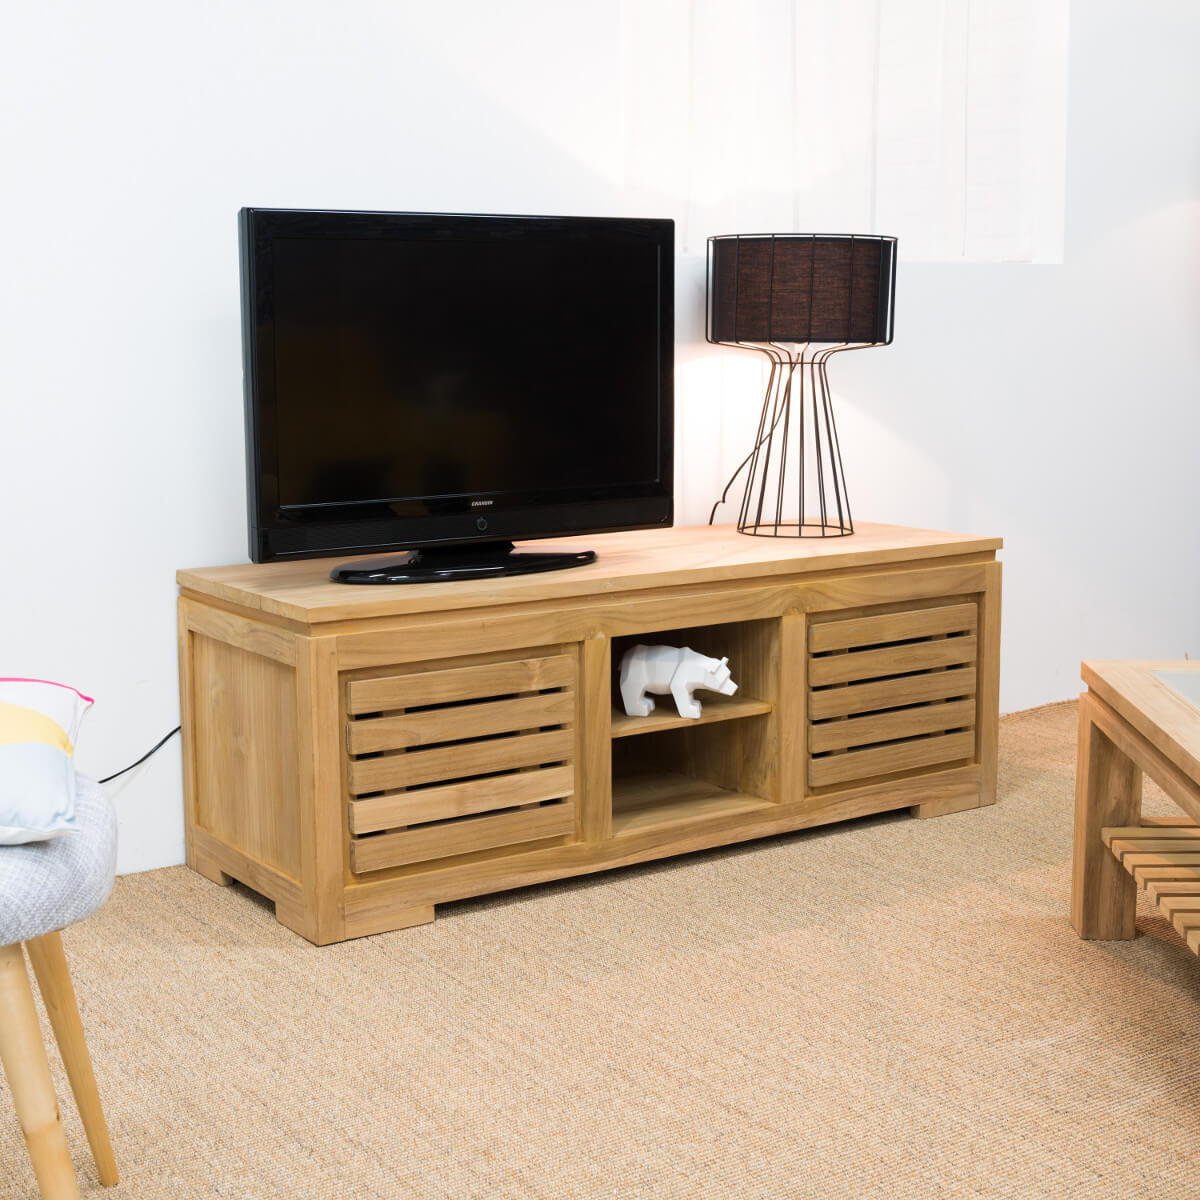 Meuble tv teck meuble tv bois naturel rectangle zen for H h createur de meubles